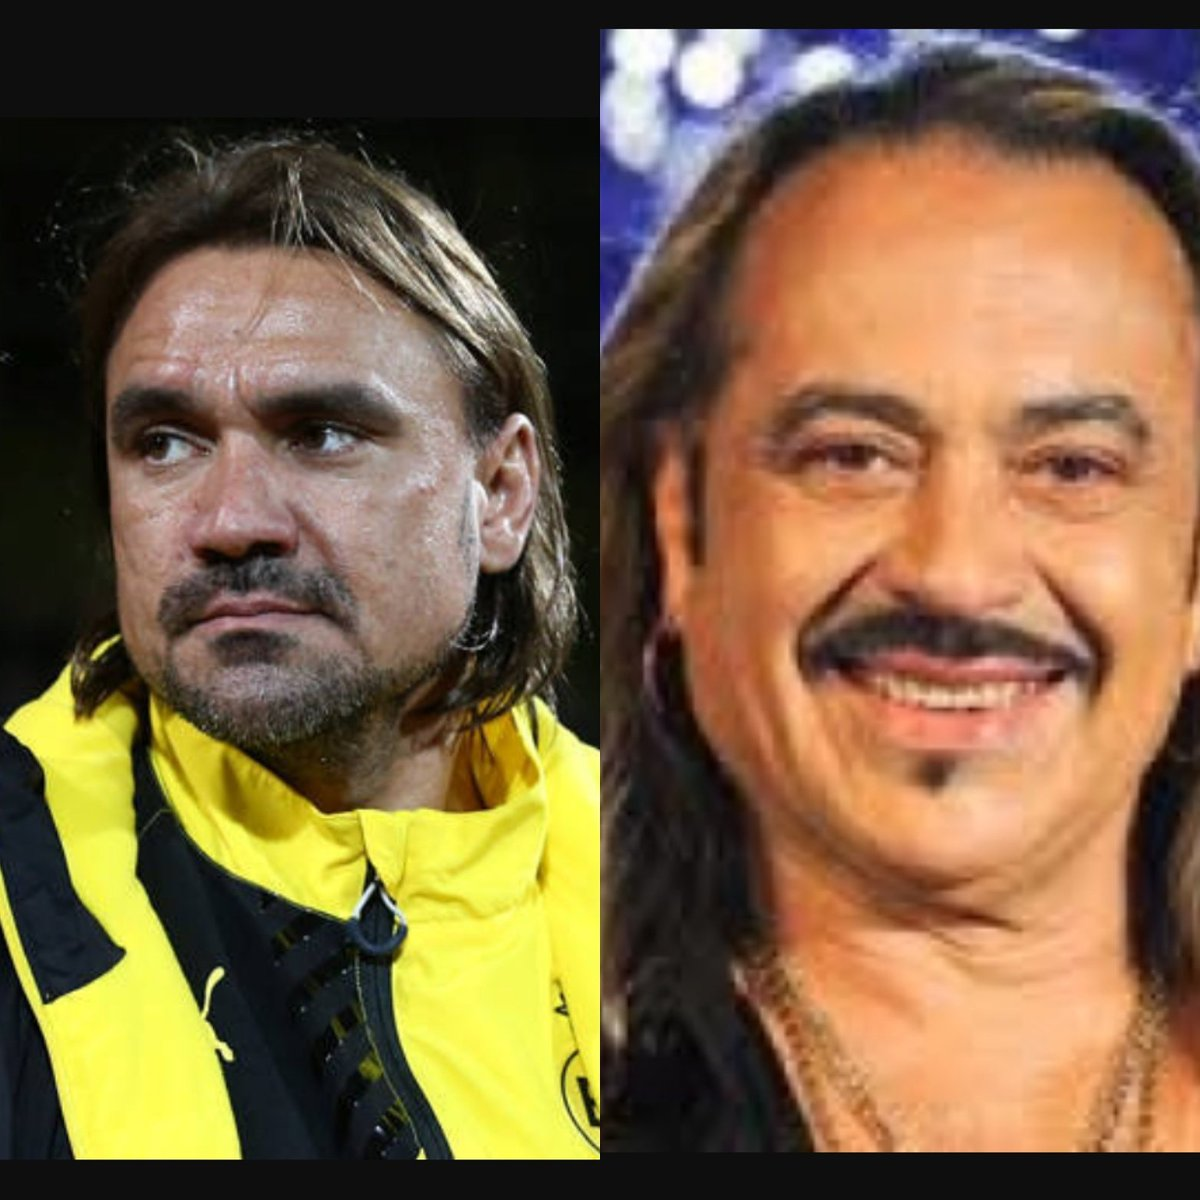 When Delia said she wanted someone just like Wagner I think they misunderstood... #ncfc #htafc<br>http://pic.twitter.com/G2rElLYB76